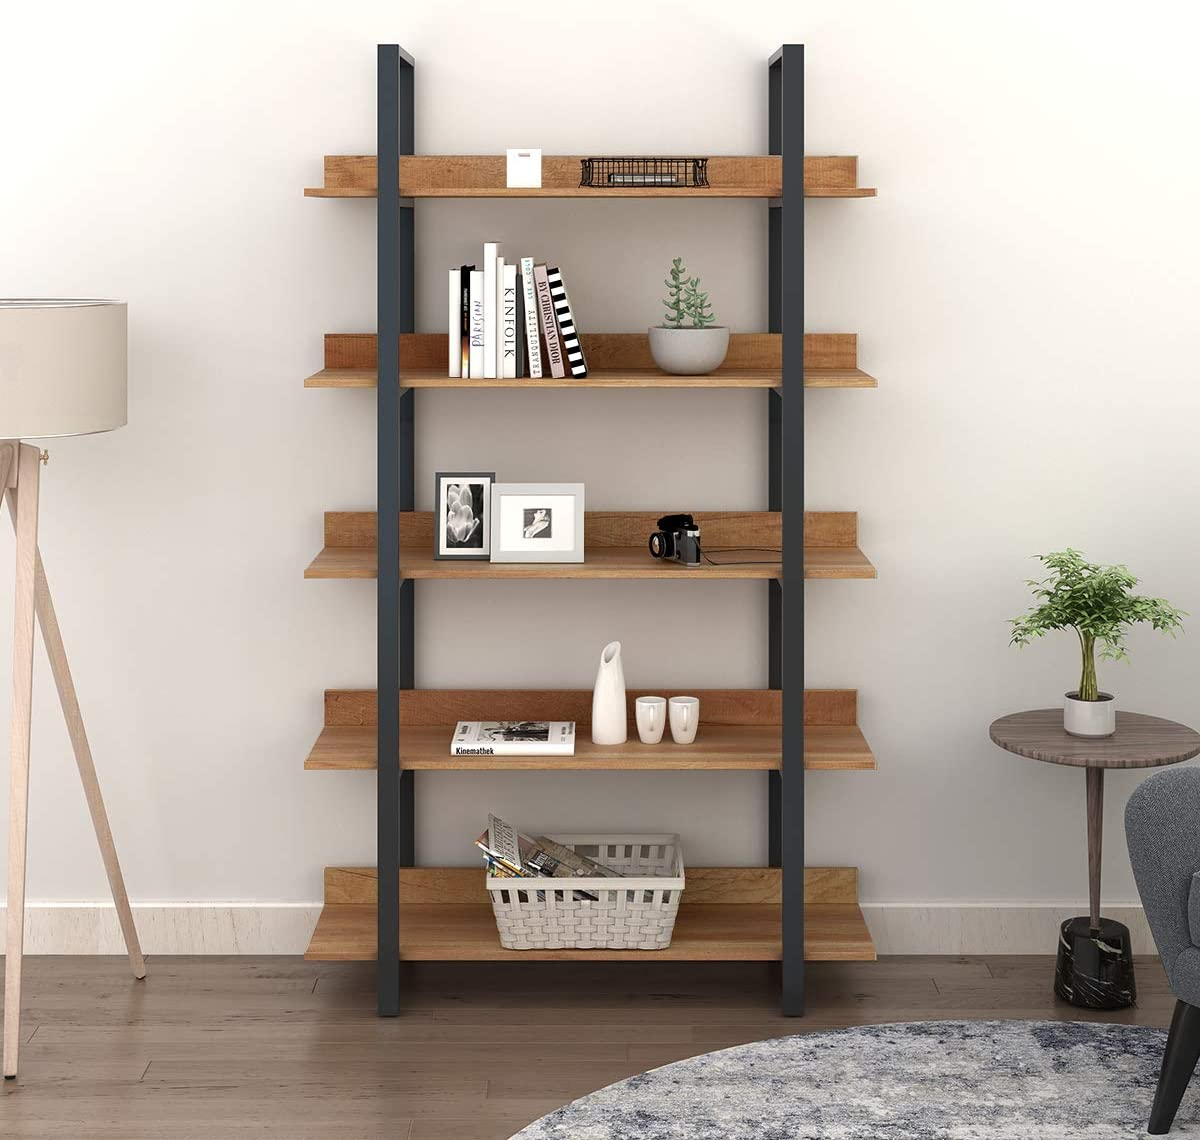 WLIVE 5-Tier Bookcase, Vintage Industrial Bookshelf, Wood and Metal Book Shelf Furniture, Organizer for Home and Office, Walnut